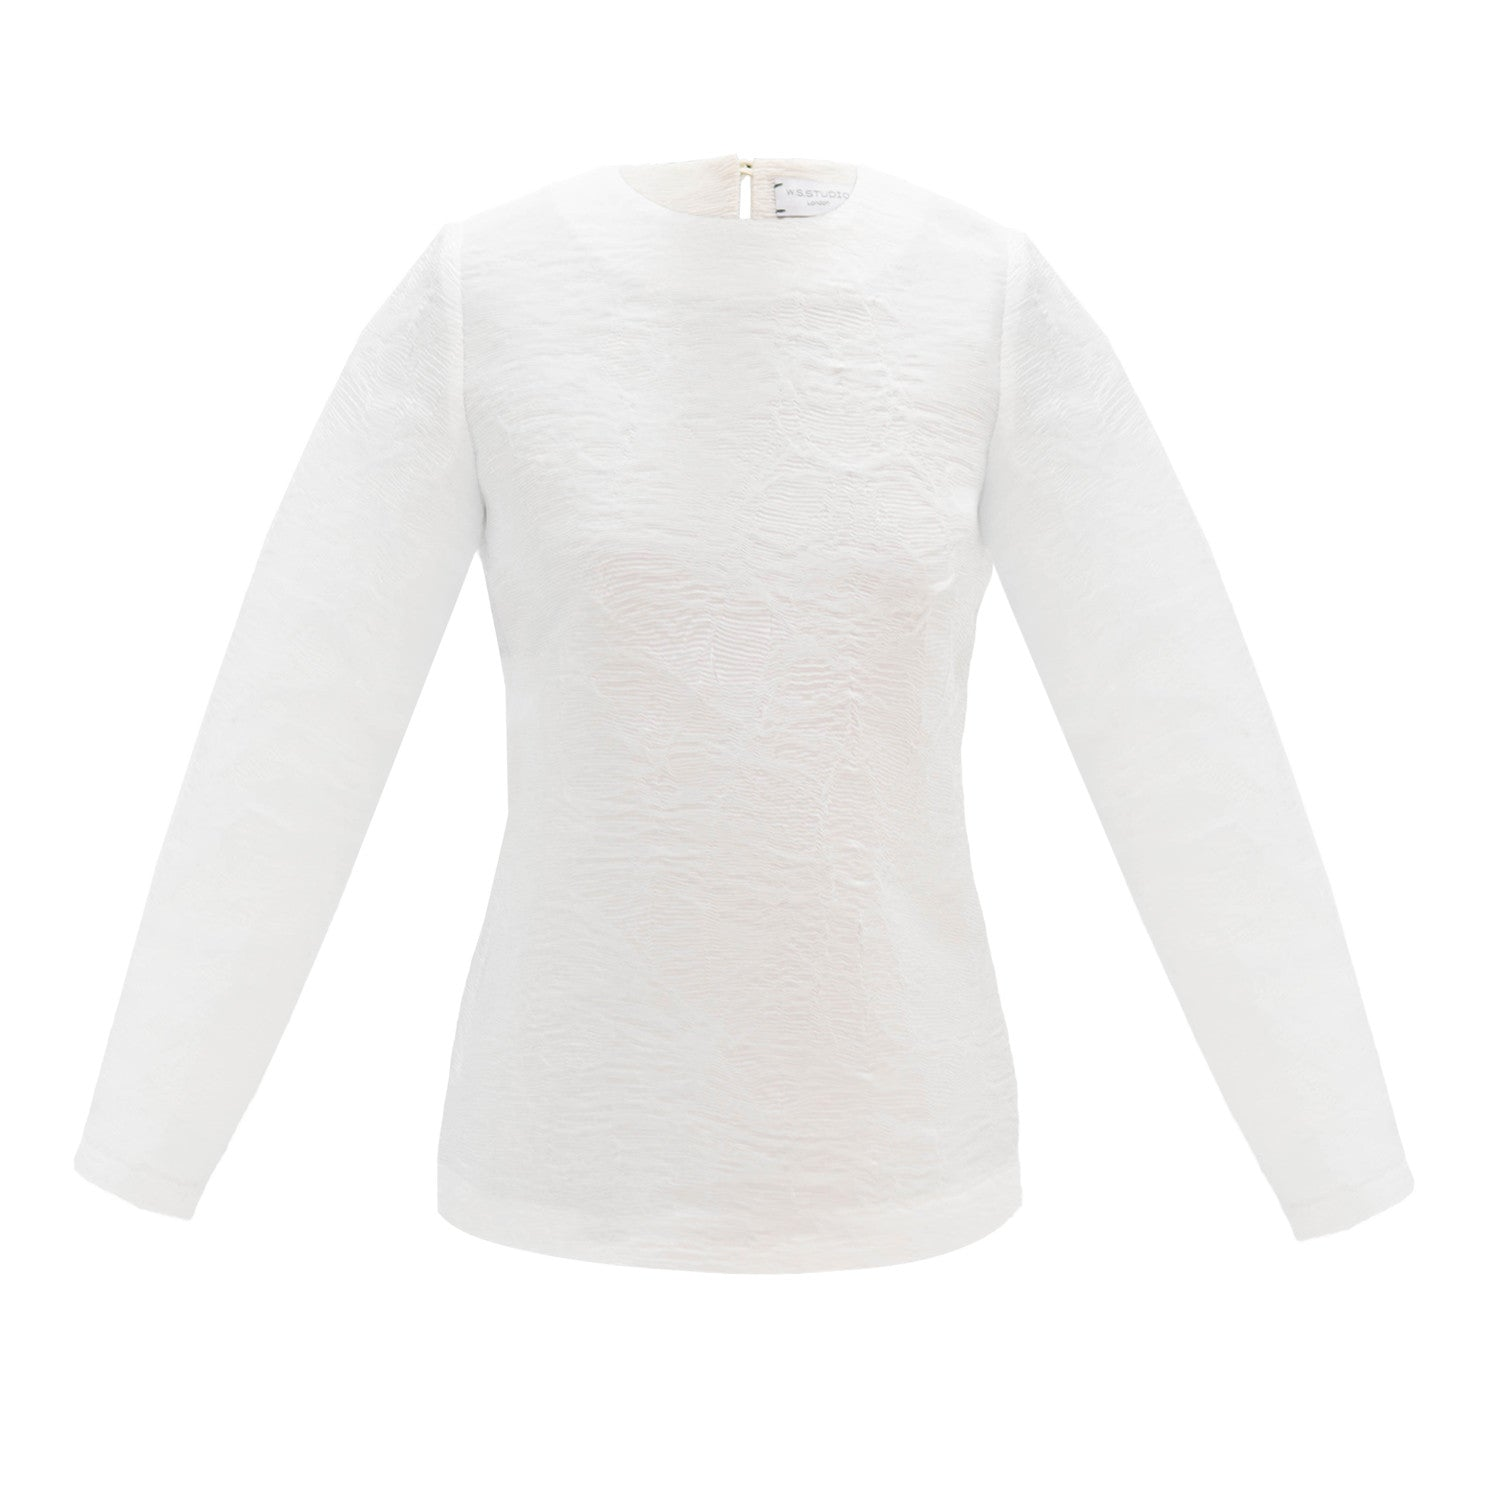 White 'tissue paper' top